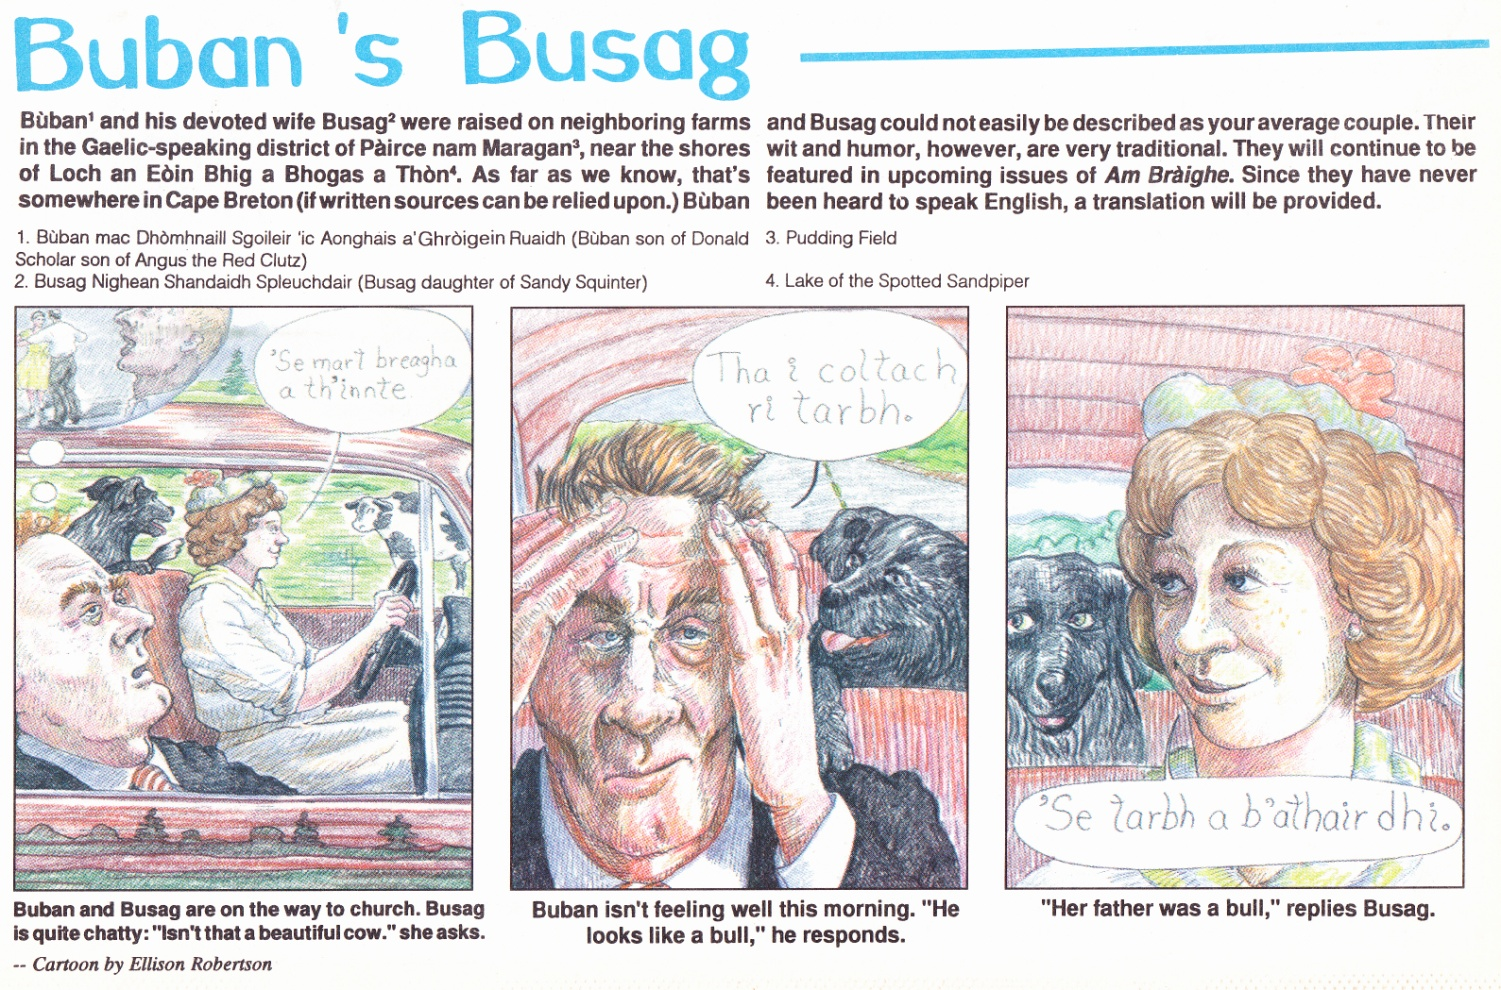 C:\Users\Robert\Documents\CARTOONING ILLUSTRATION ANIMATION\IMAGE CARTOON\IMAGE CARTOON B\BUBAN AND BUSAG, AmBraighe, Summer 1995, 20.jpg